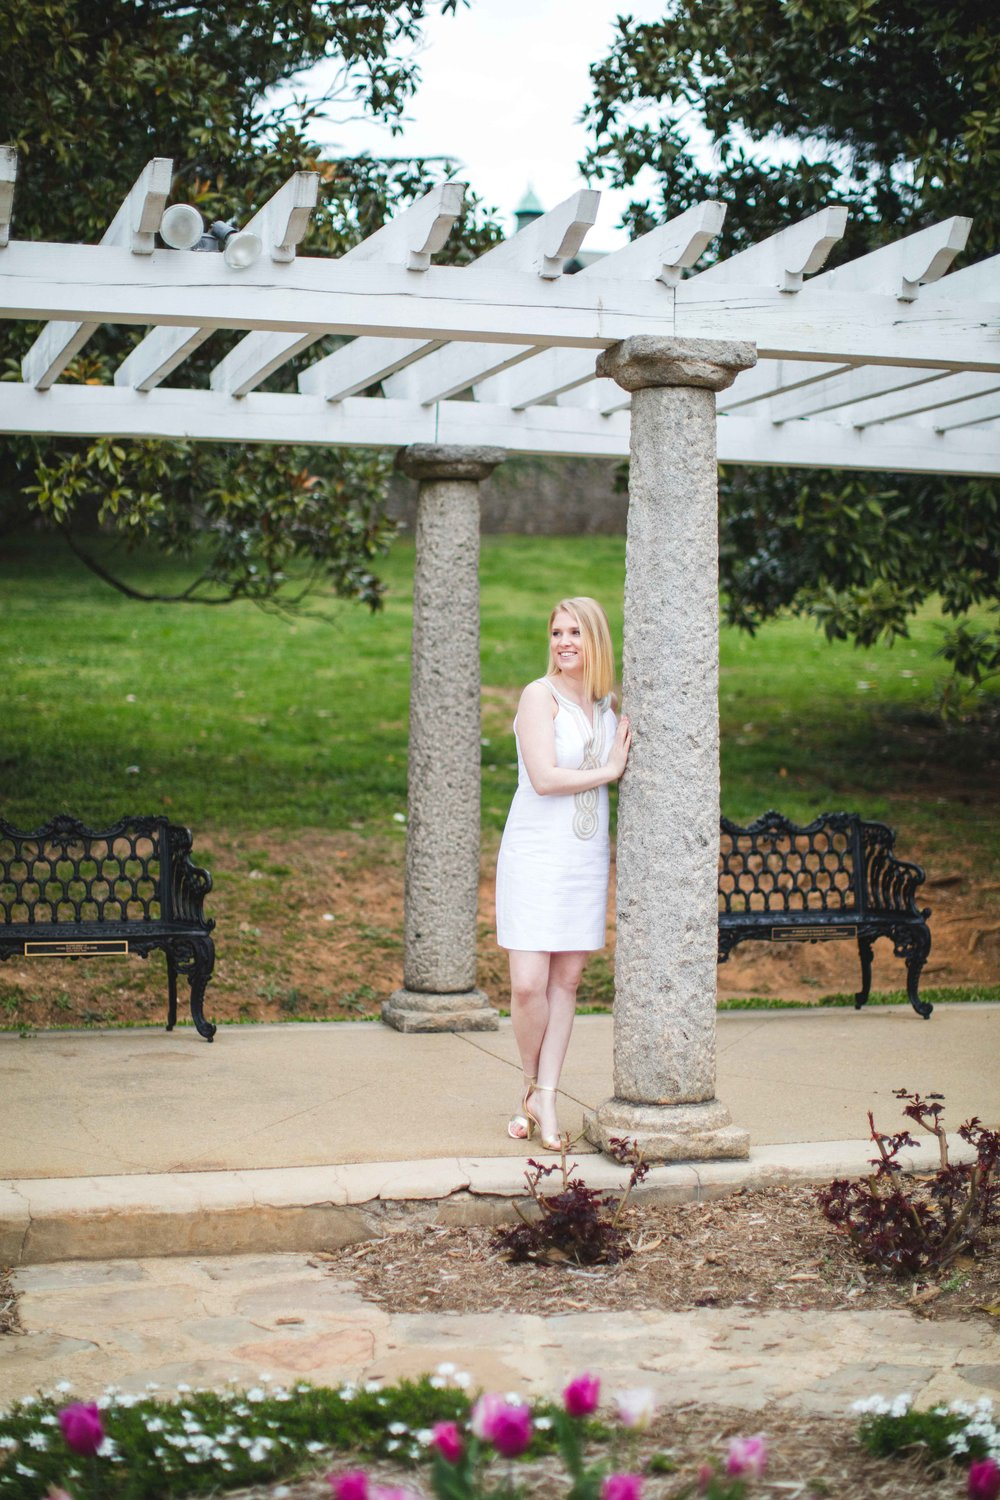 maymont-richmond-senior-portraits-vcu-graduation-richmond-wedding-photographer-2.jpg